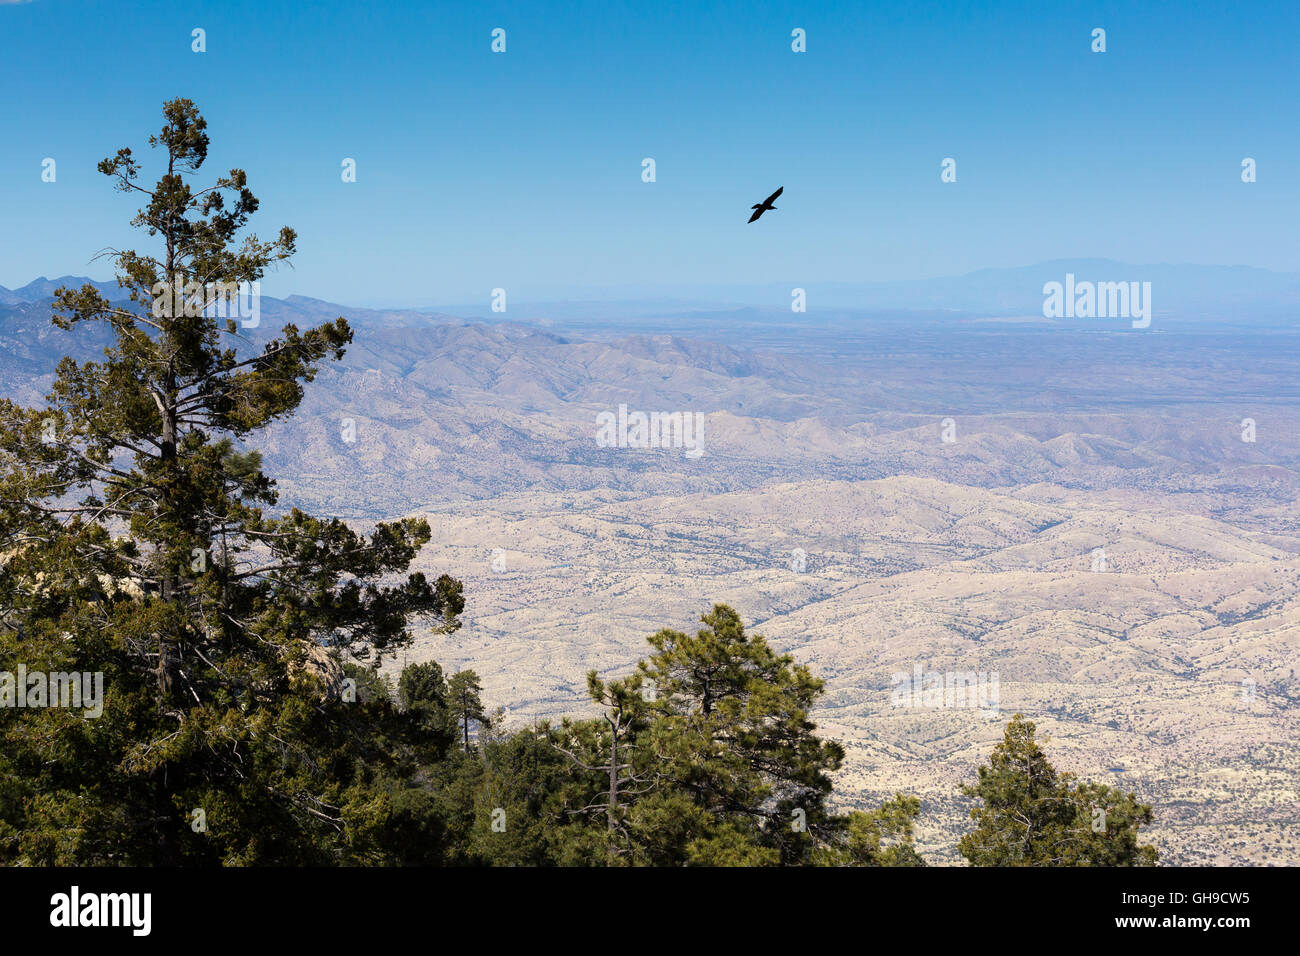 A raven flying high above the Sonoran Desert floor away from Mica Mountain. Saguaro National Park, Arizona - Stock Image